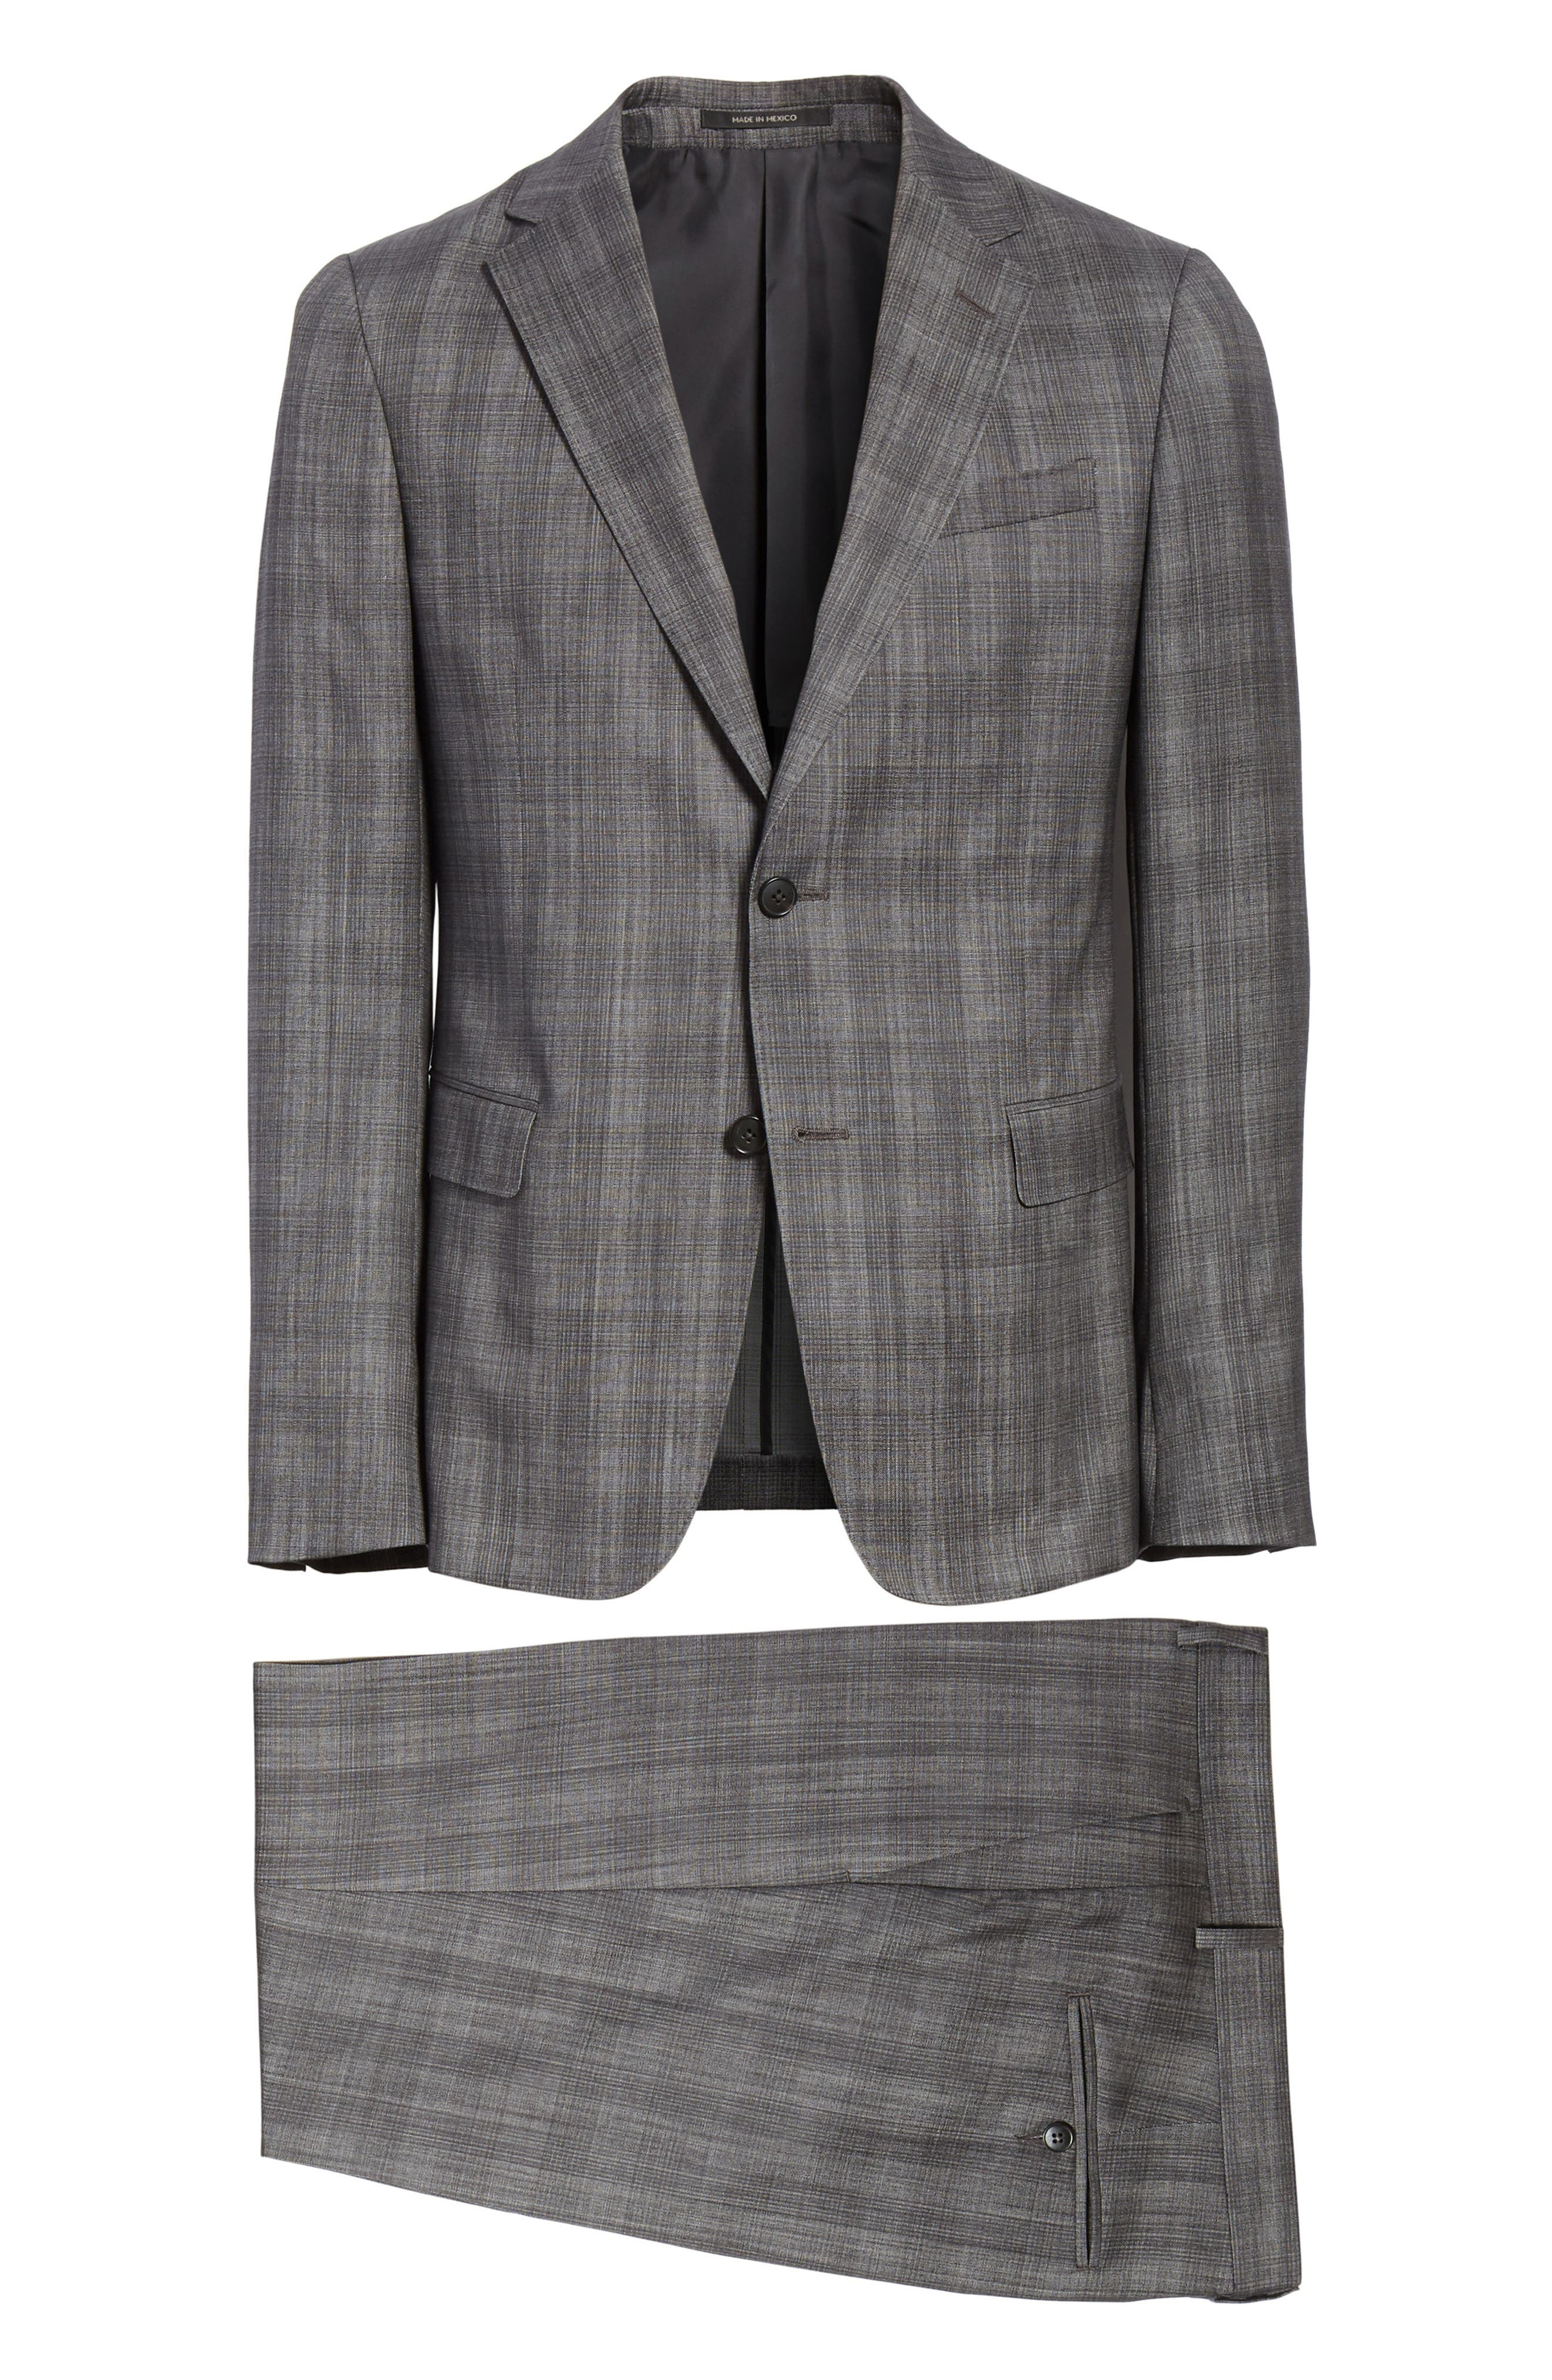 Classic Fit Plaid Wool & Silk Suit,                             Alternate thumbnail 8, color,                             Dark Grey Check